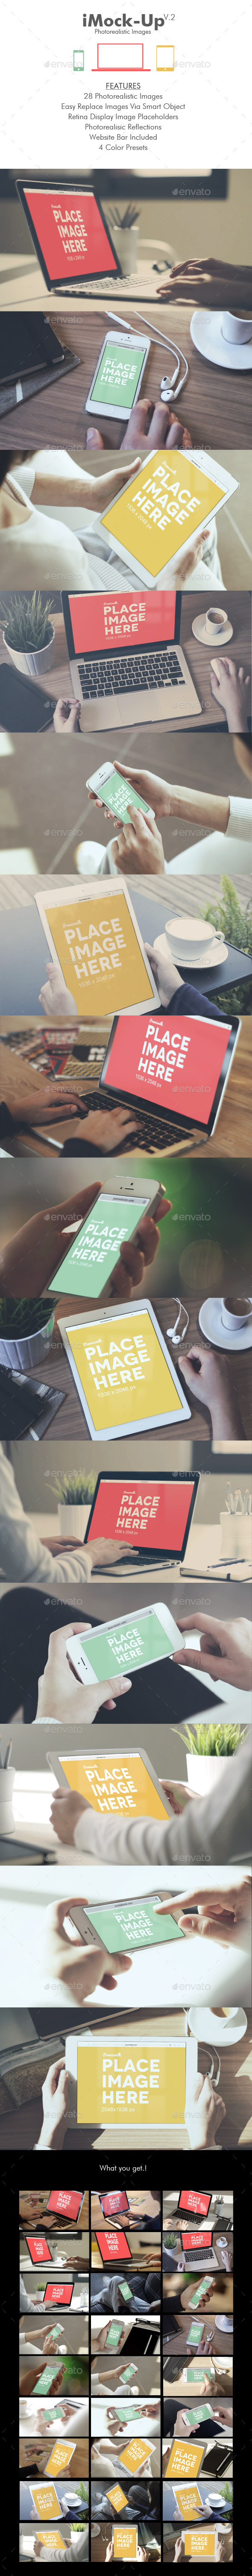 iMock-Up Photorealistic Images - Displays Product Mock-Ups